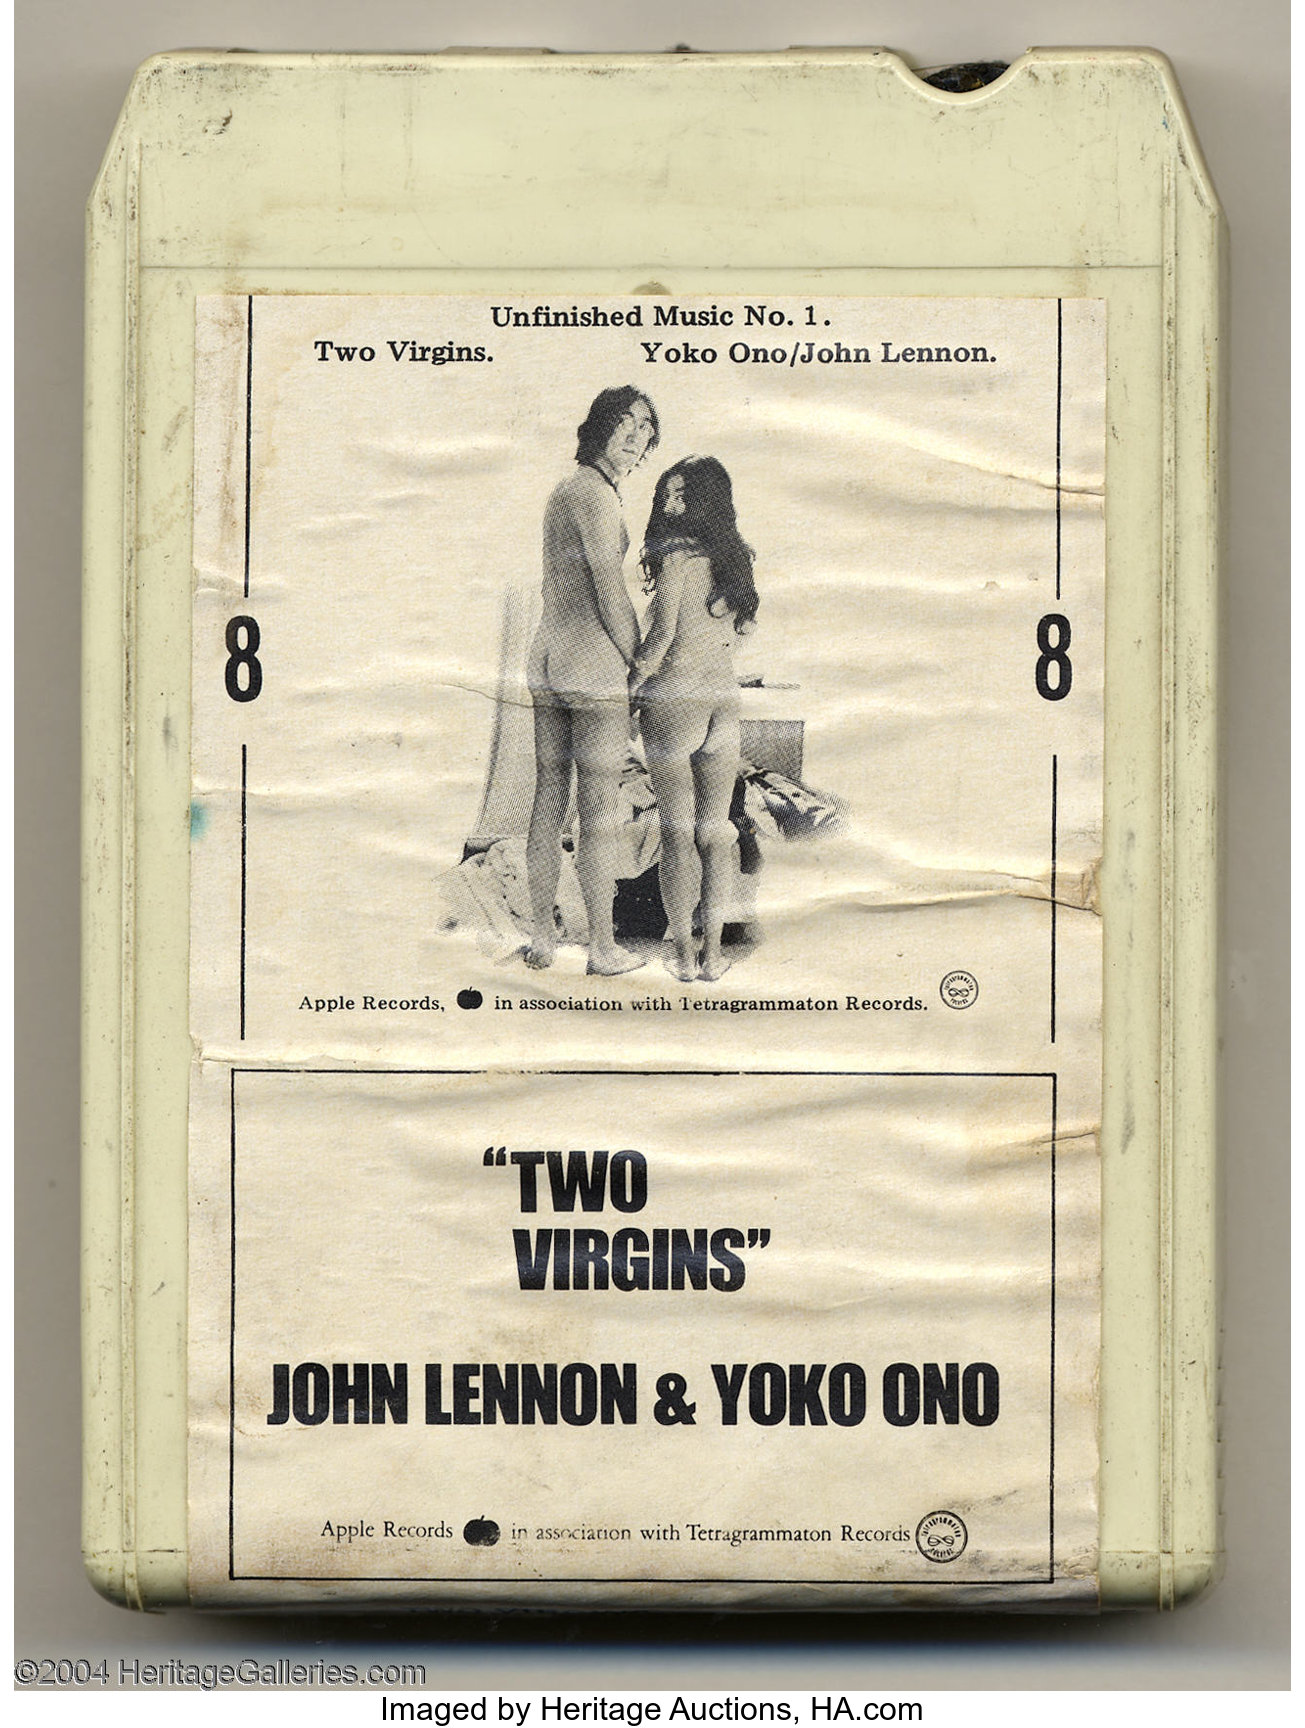 John Lennon And Yoko Ono Unfinished Music No 1 Two Virgins Lot 22635 Heritage Auctions